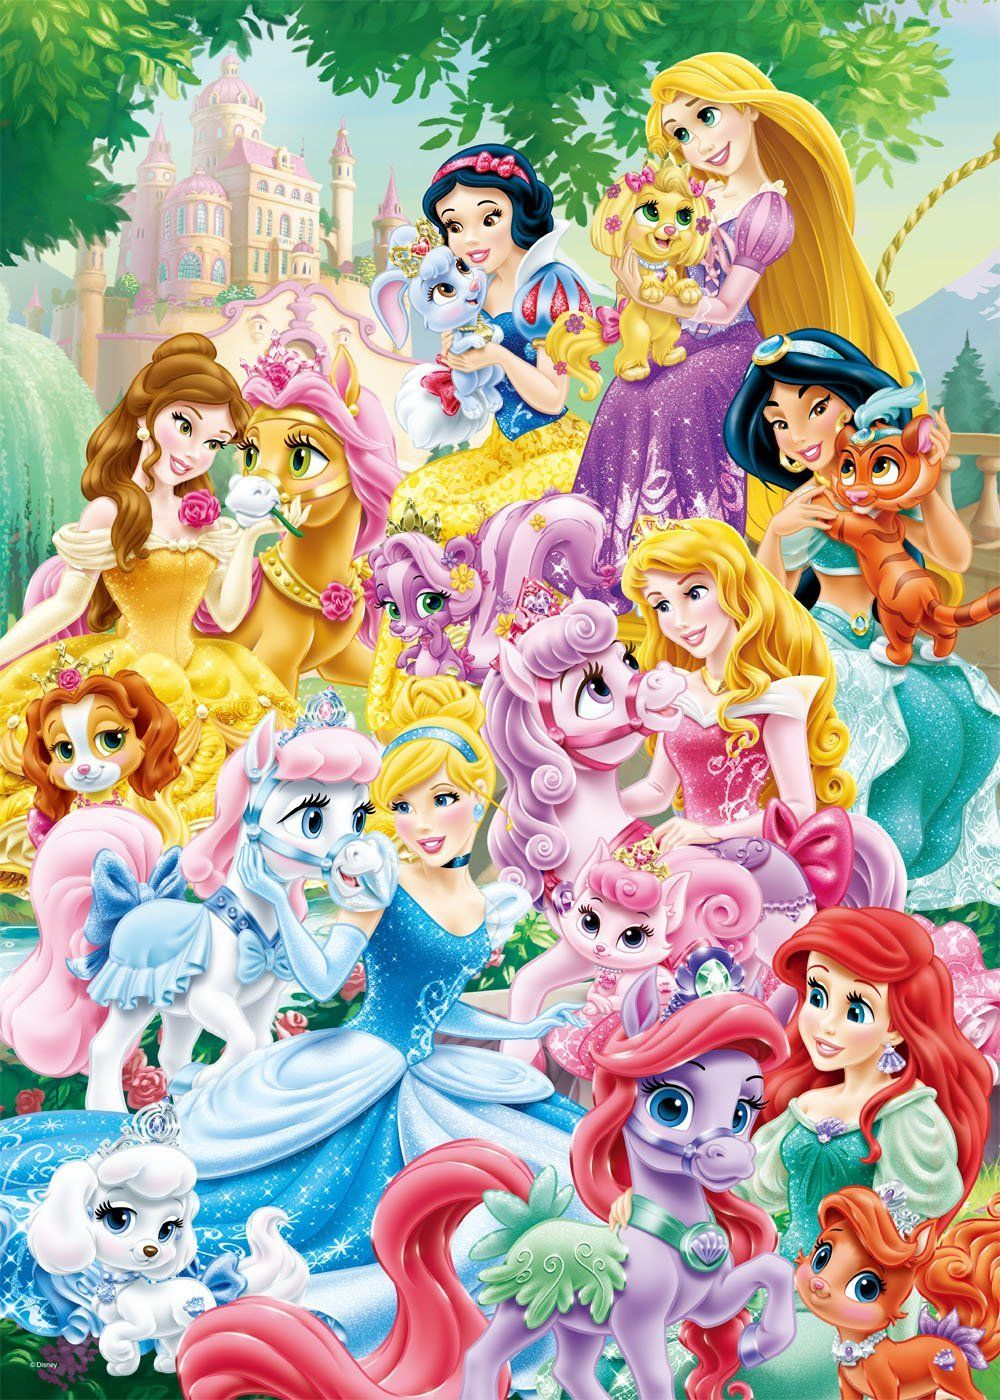 Disney Princess Palace Pets Princesas disney, Princesas